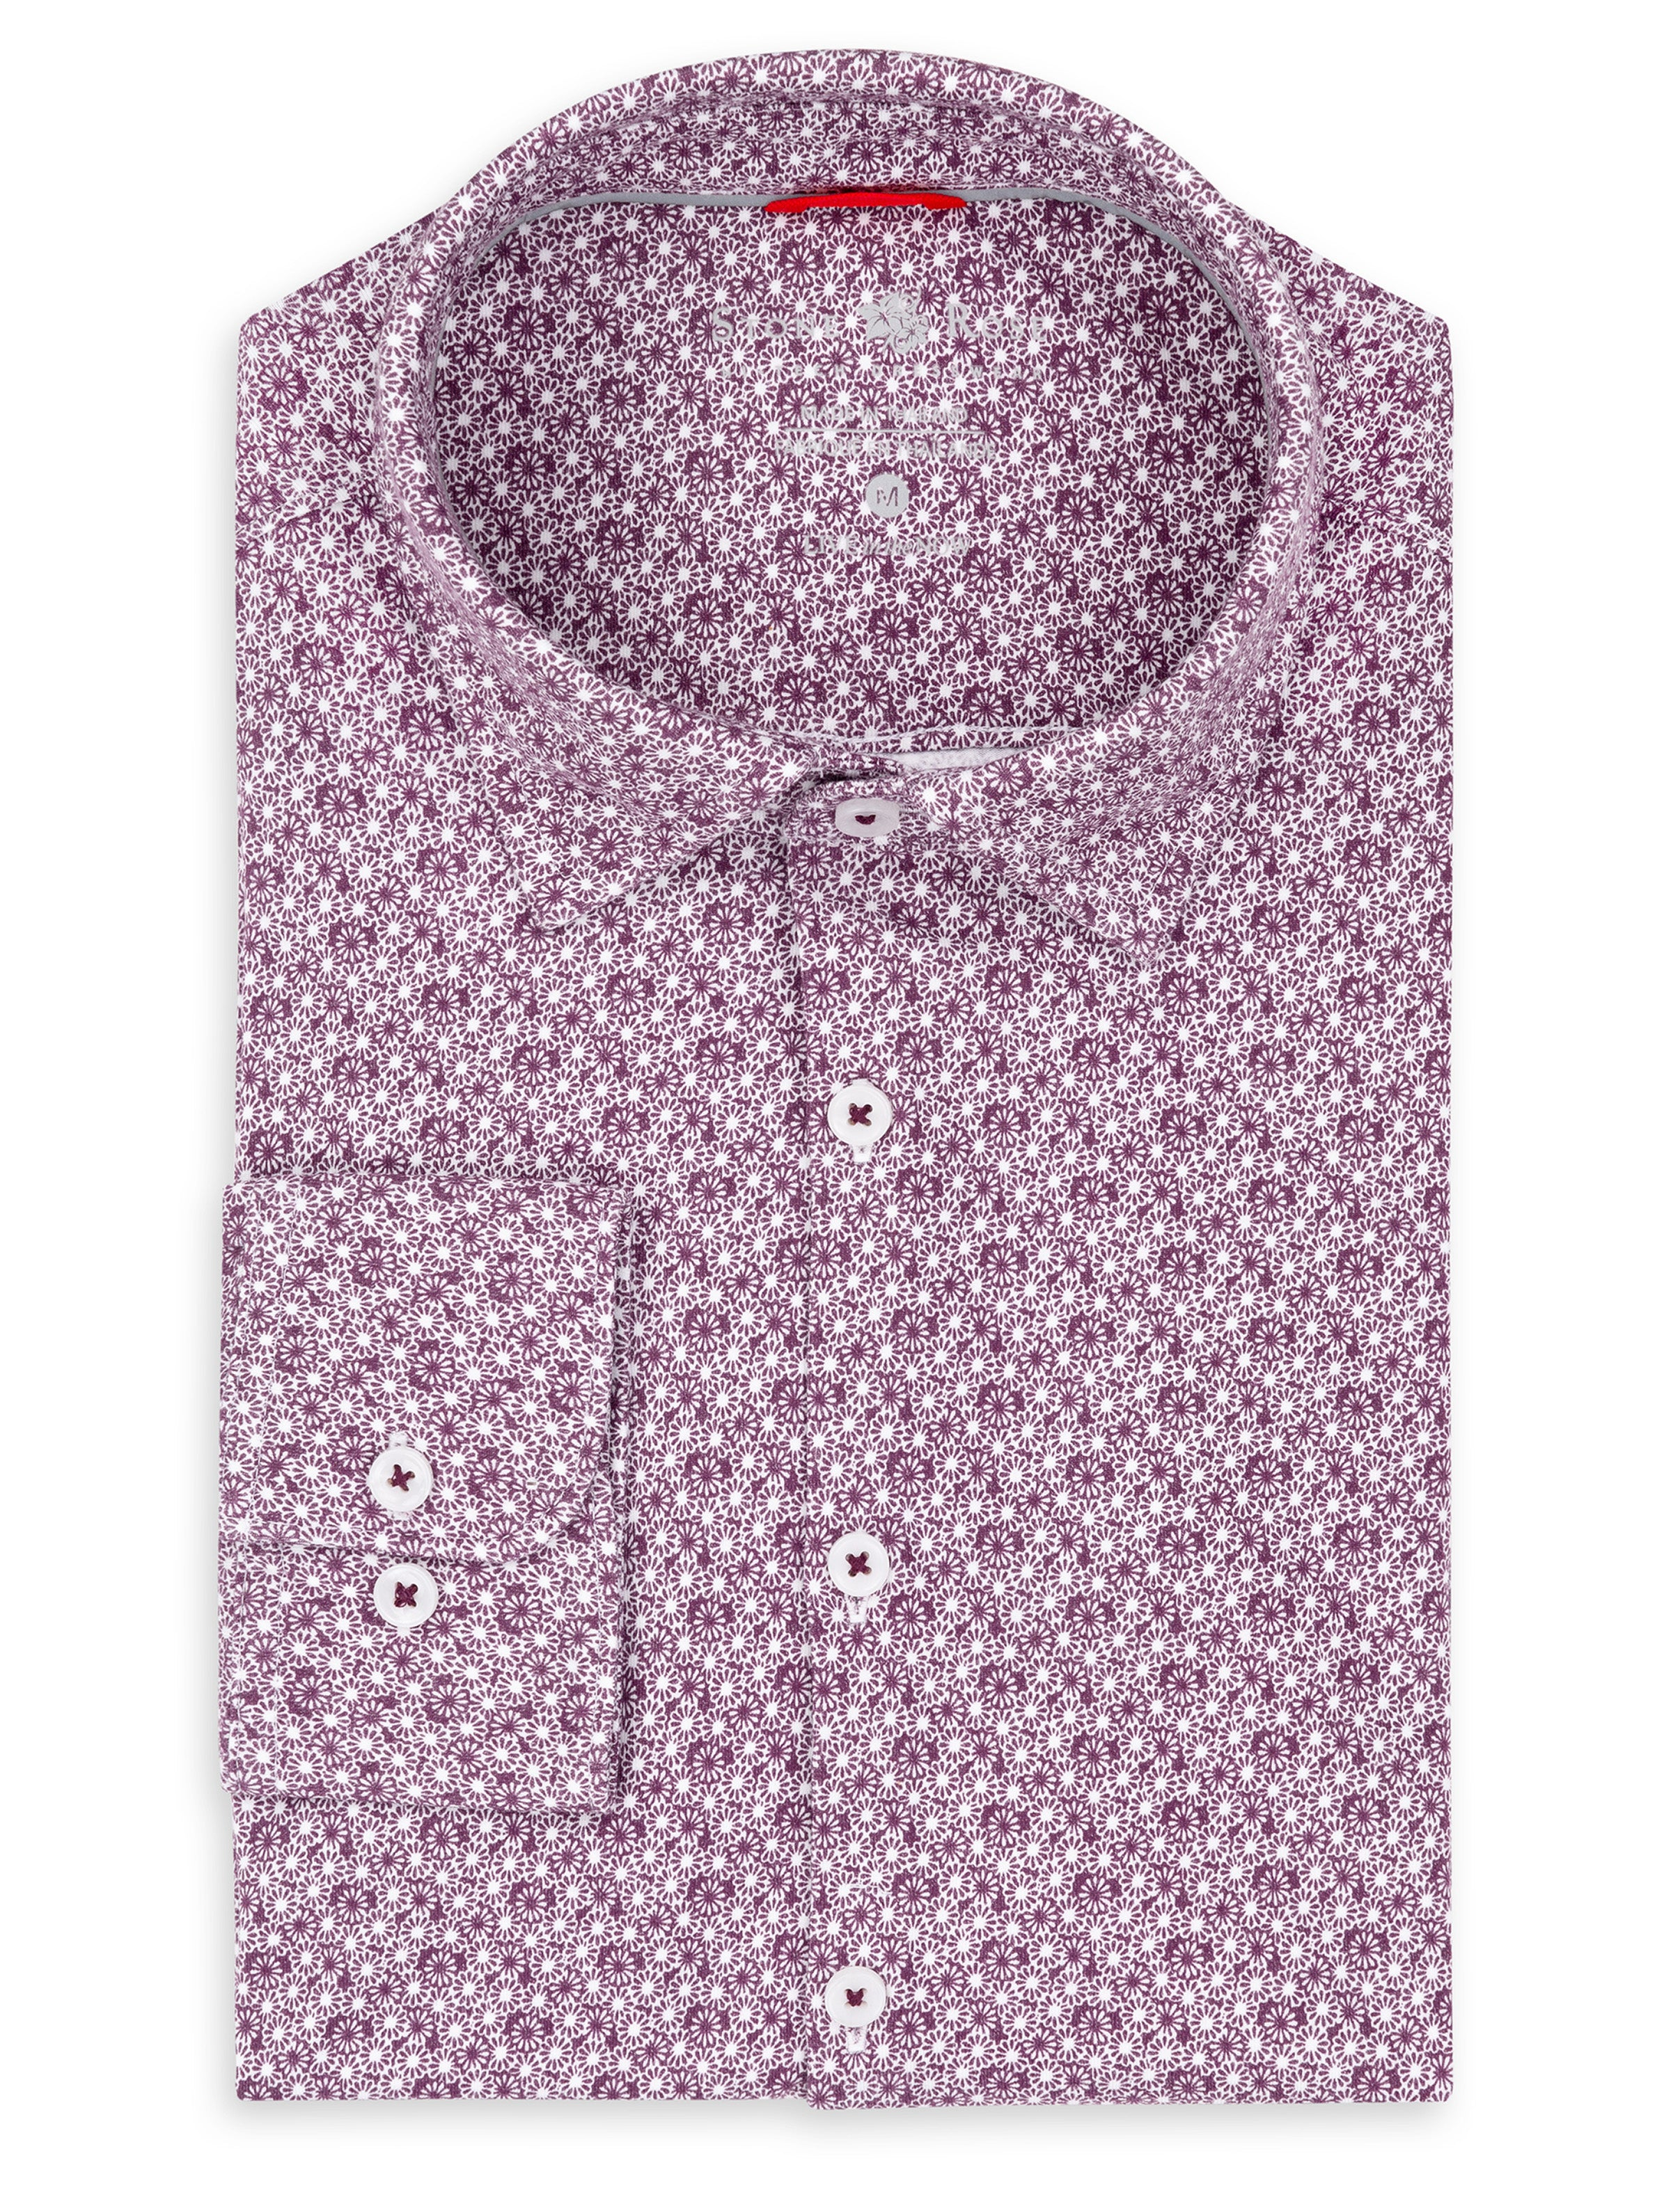 Berry Floral Knit Performance Long Sleeve Shirt-Stone Rose